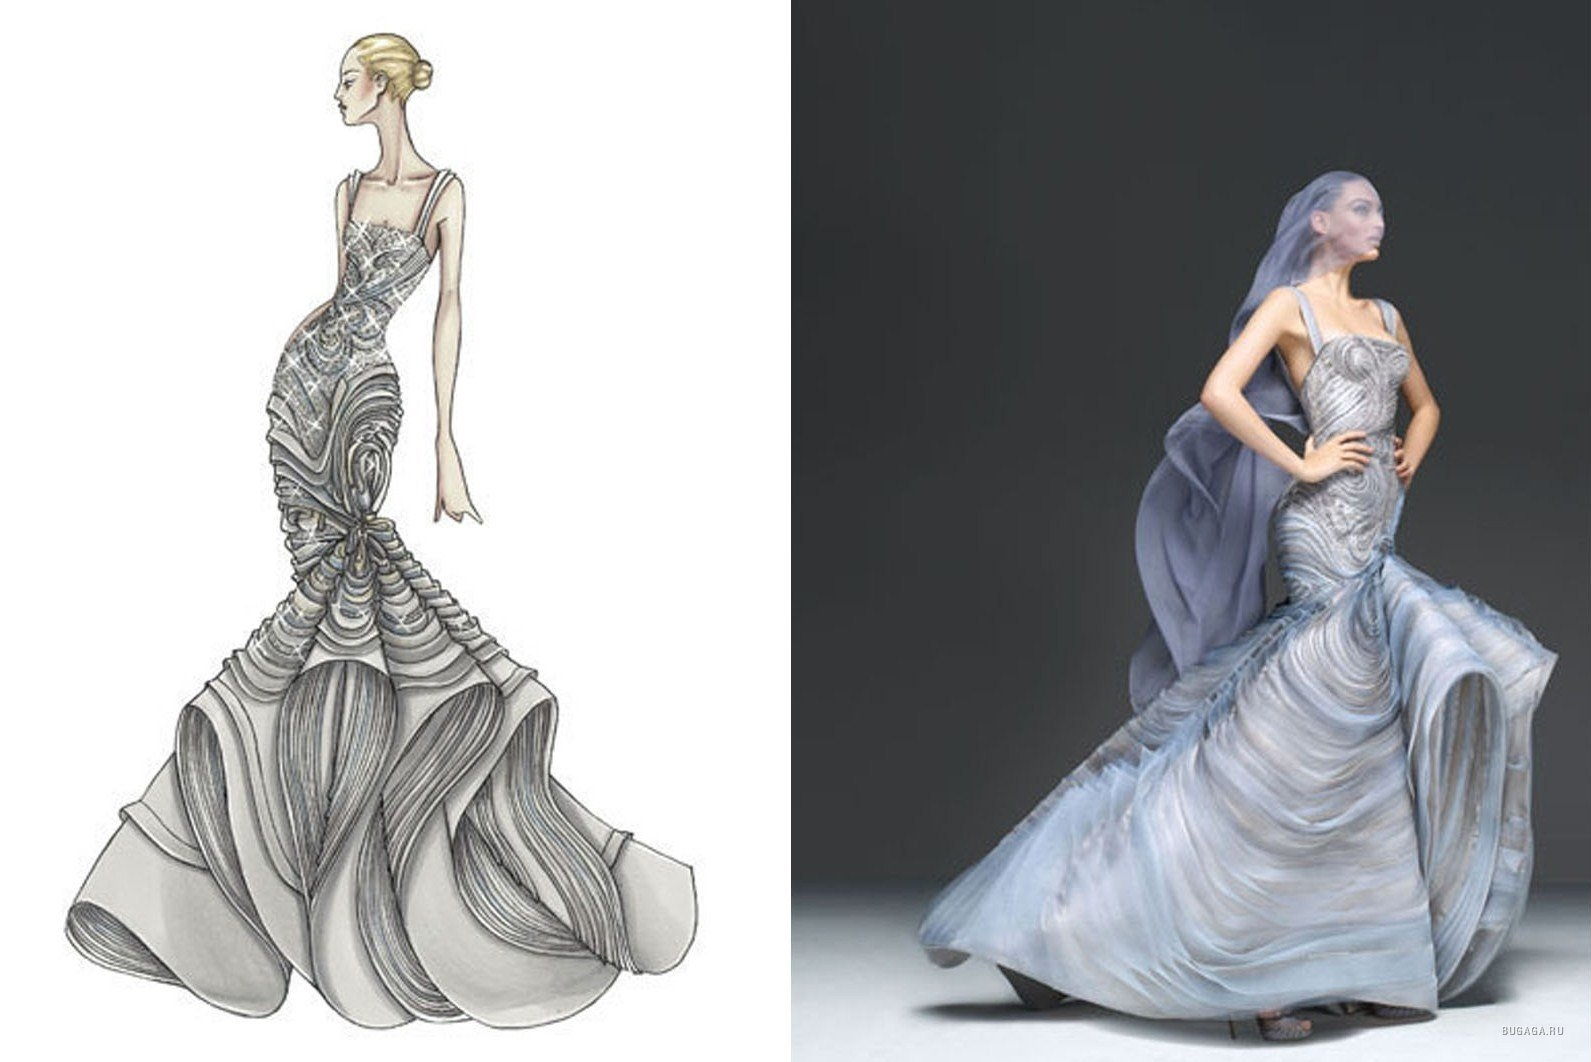 sketches sketch famous designers dress dresses designer drawings designing designs versace clothes wear couture moda sketched cute element guide collection